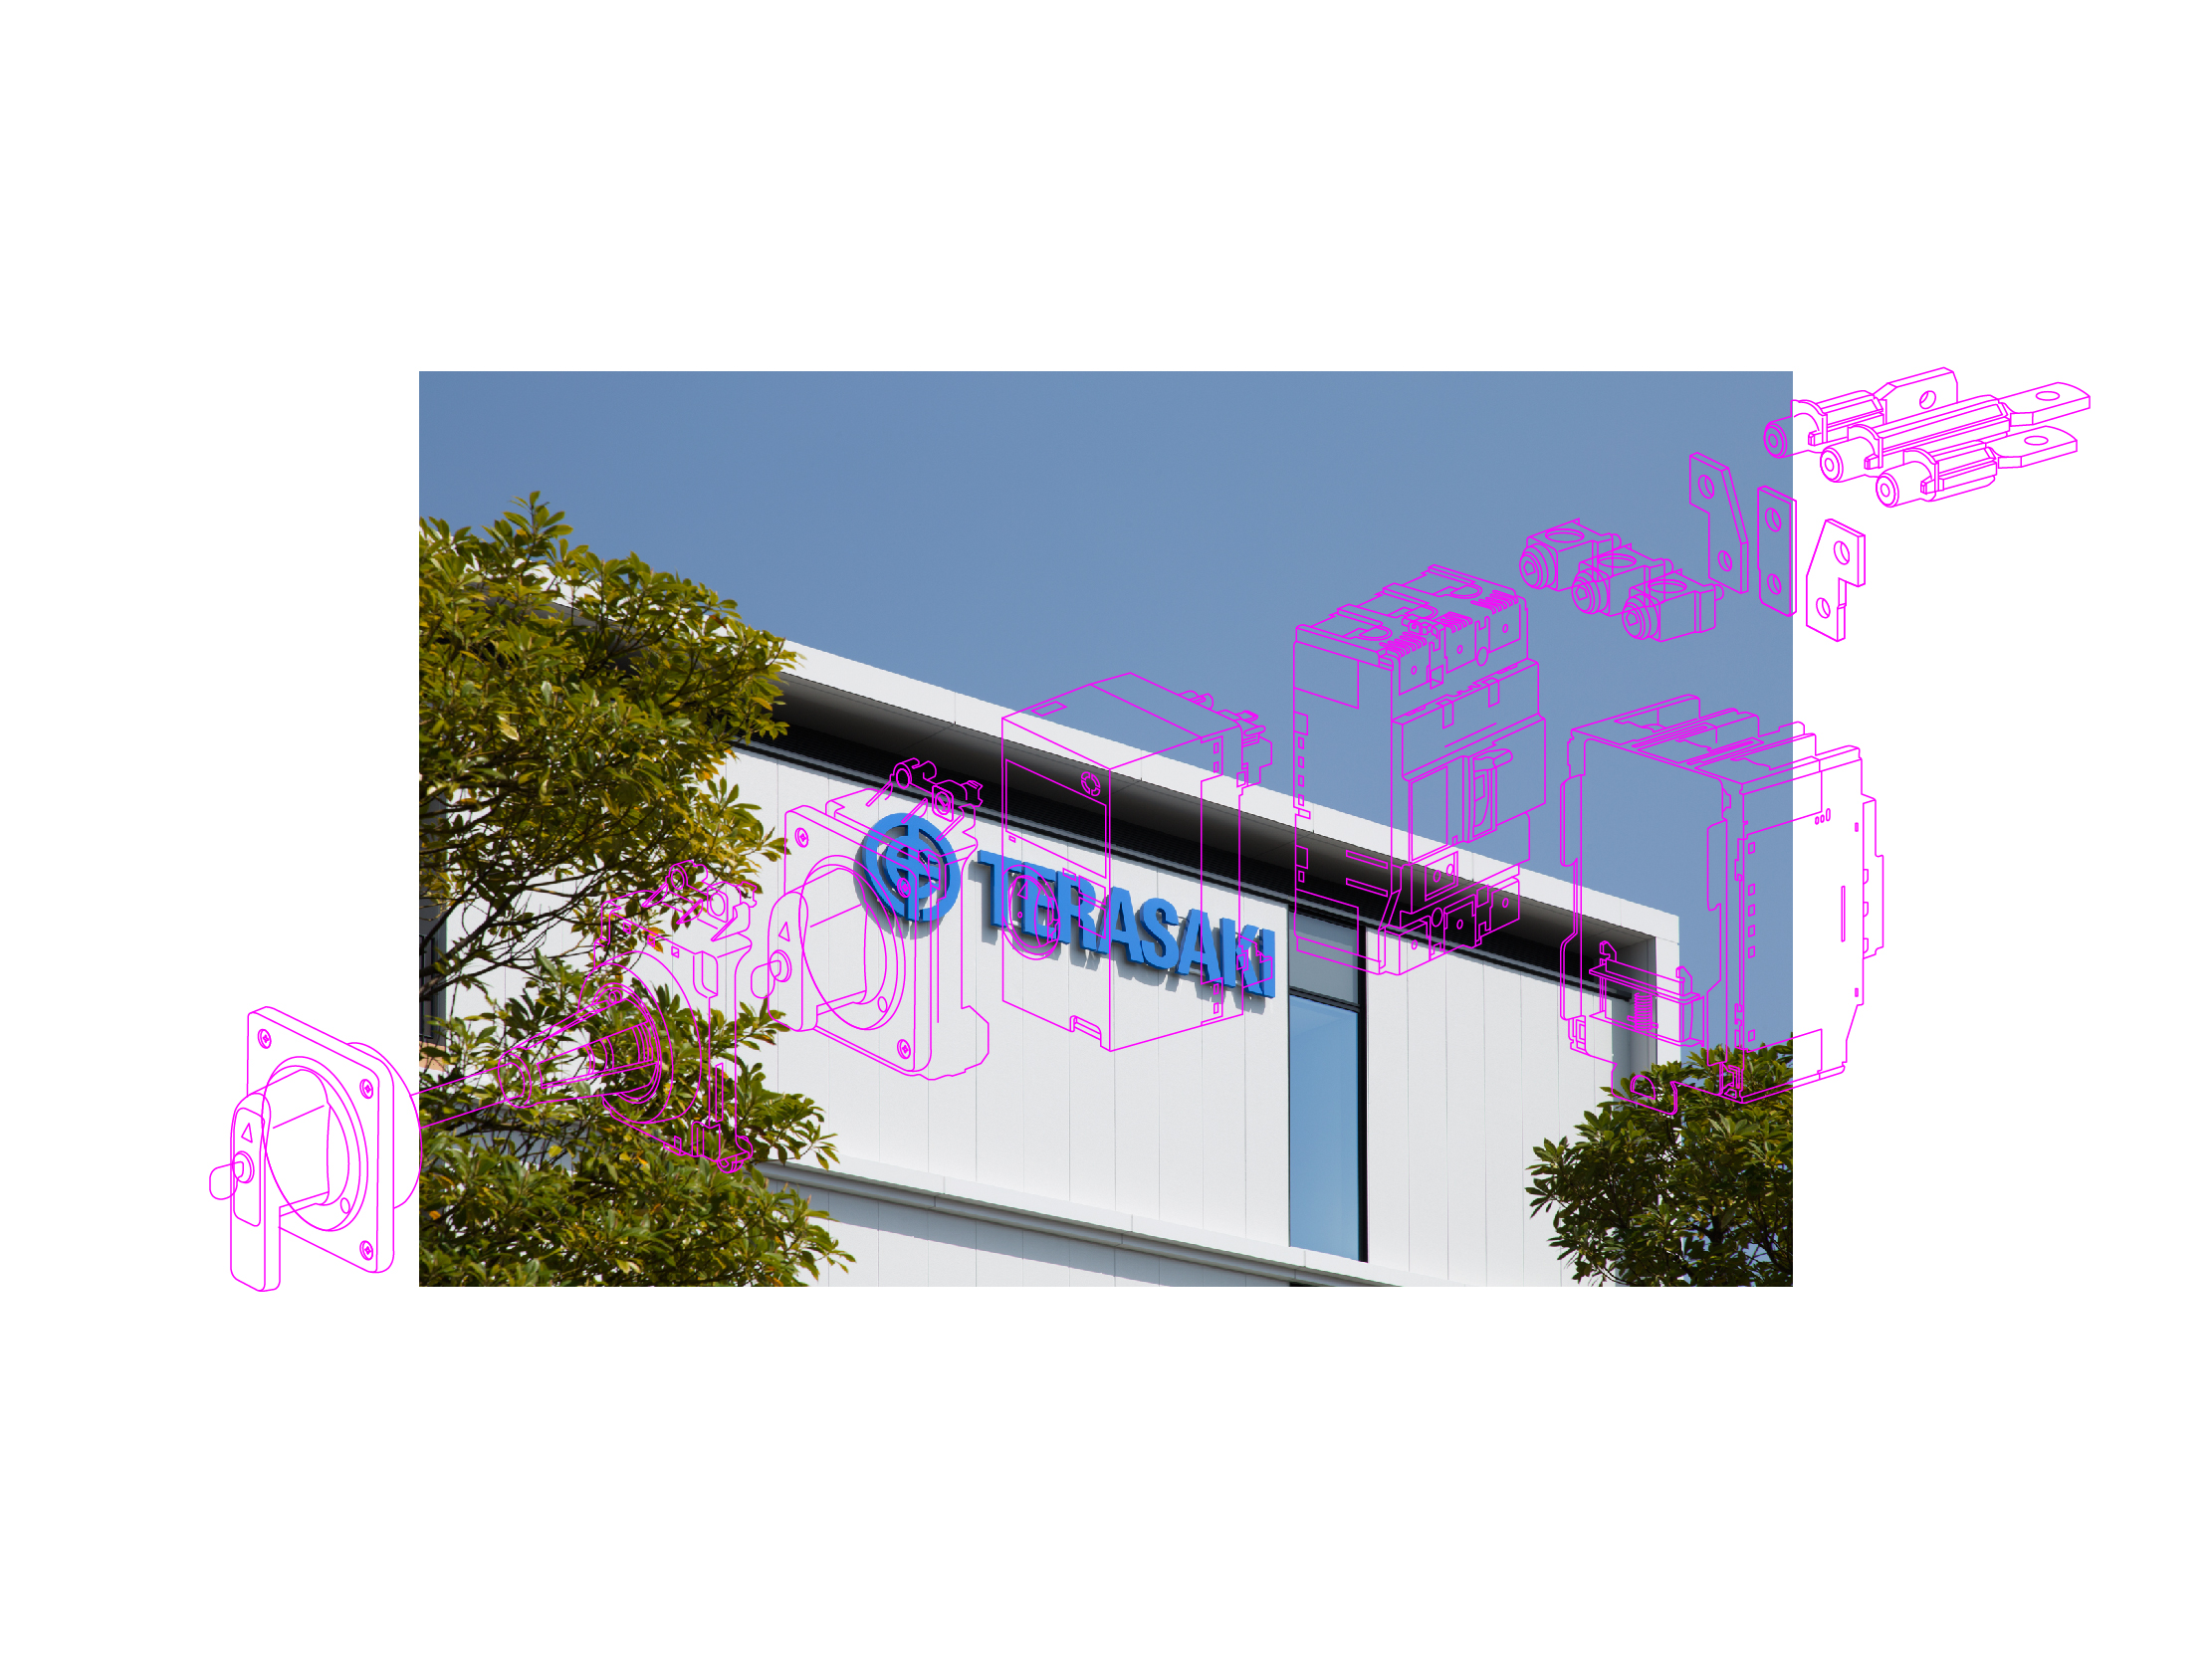 Terasaki Electric headquarter image with product technical illustration in bold pink